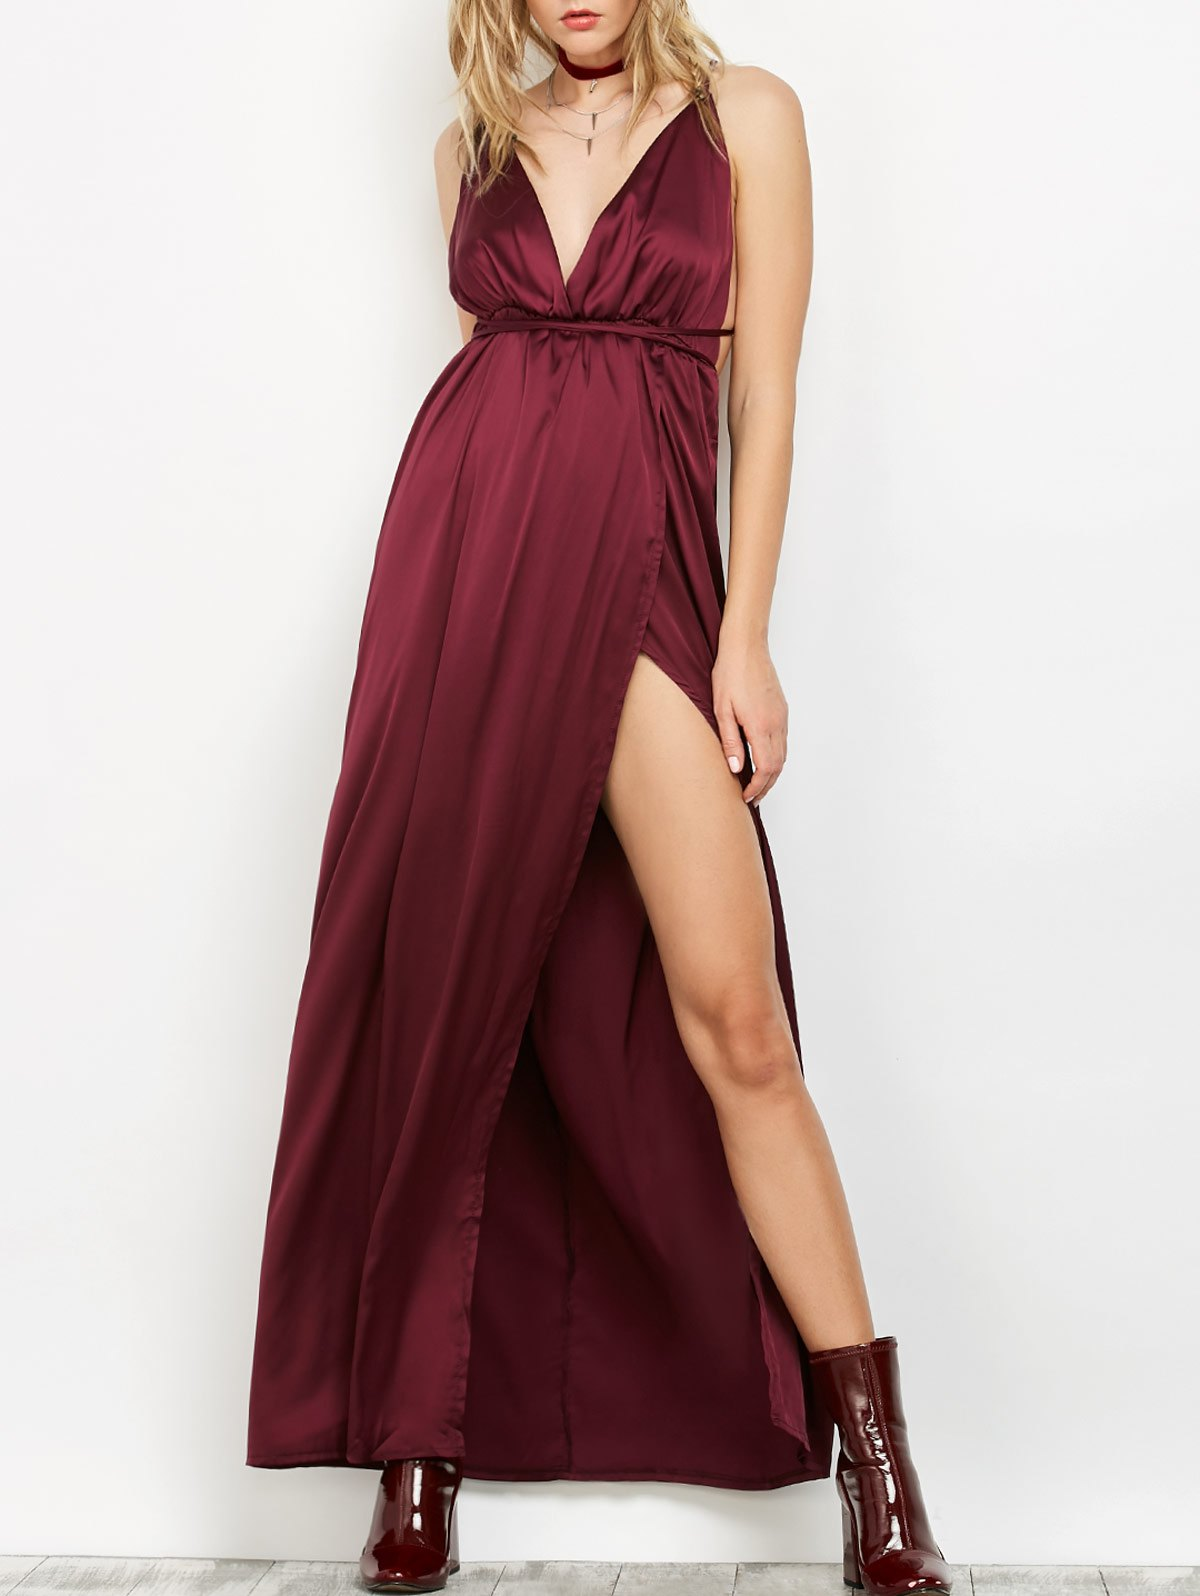 Backless Plunge Evening Gown DressClothes<br><br><br>Size: S<br>Color: PURPLISH RED